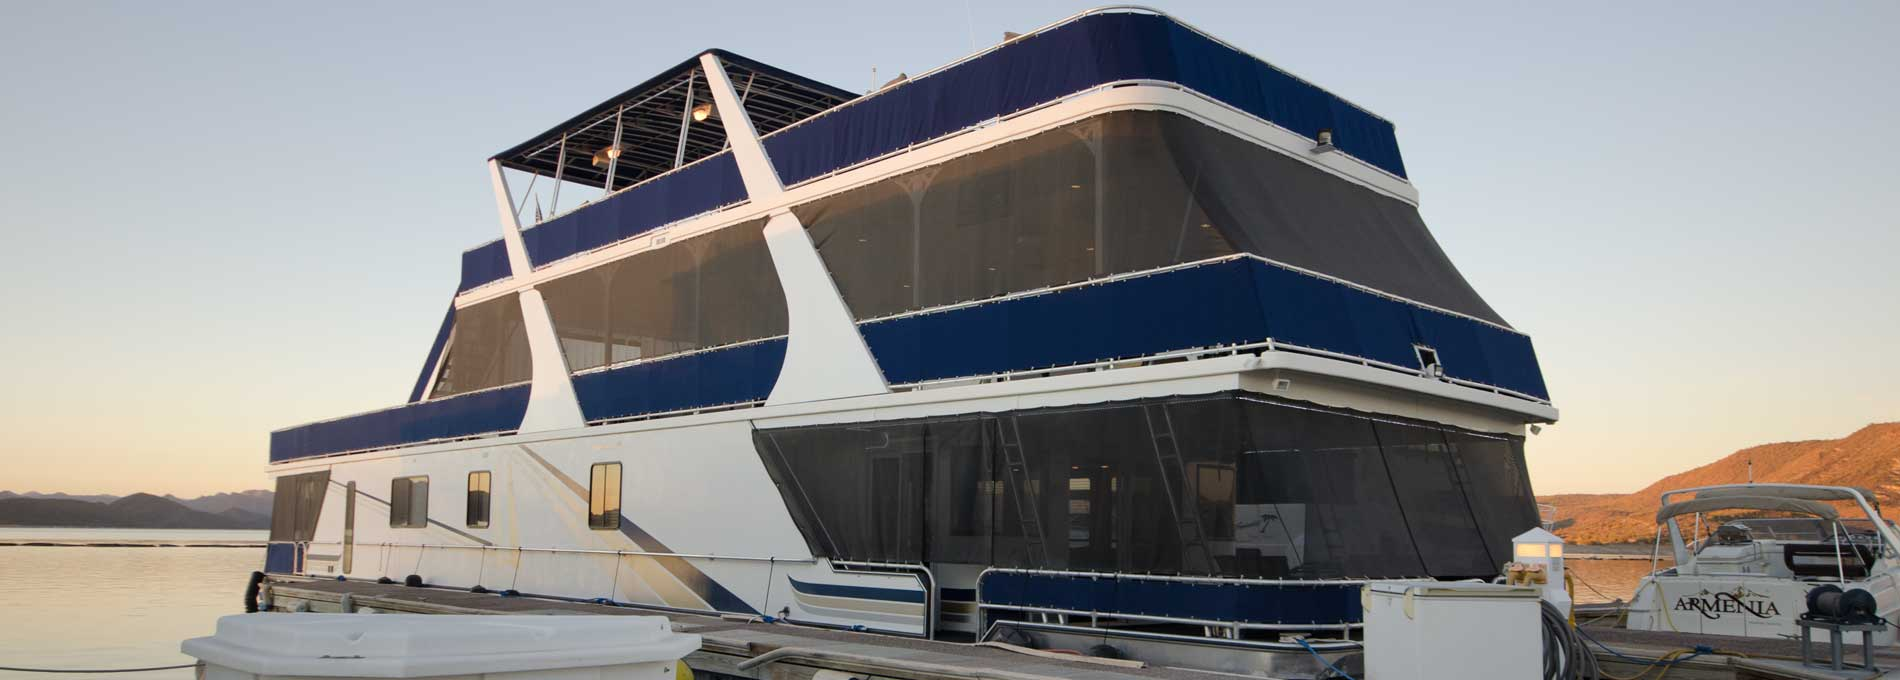 arizona sumerset house boat for sale